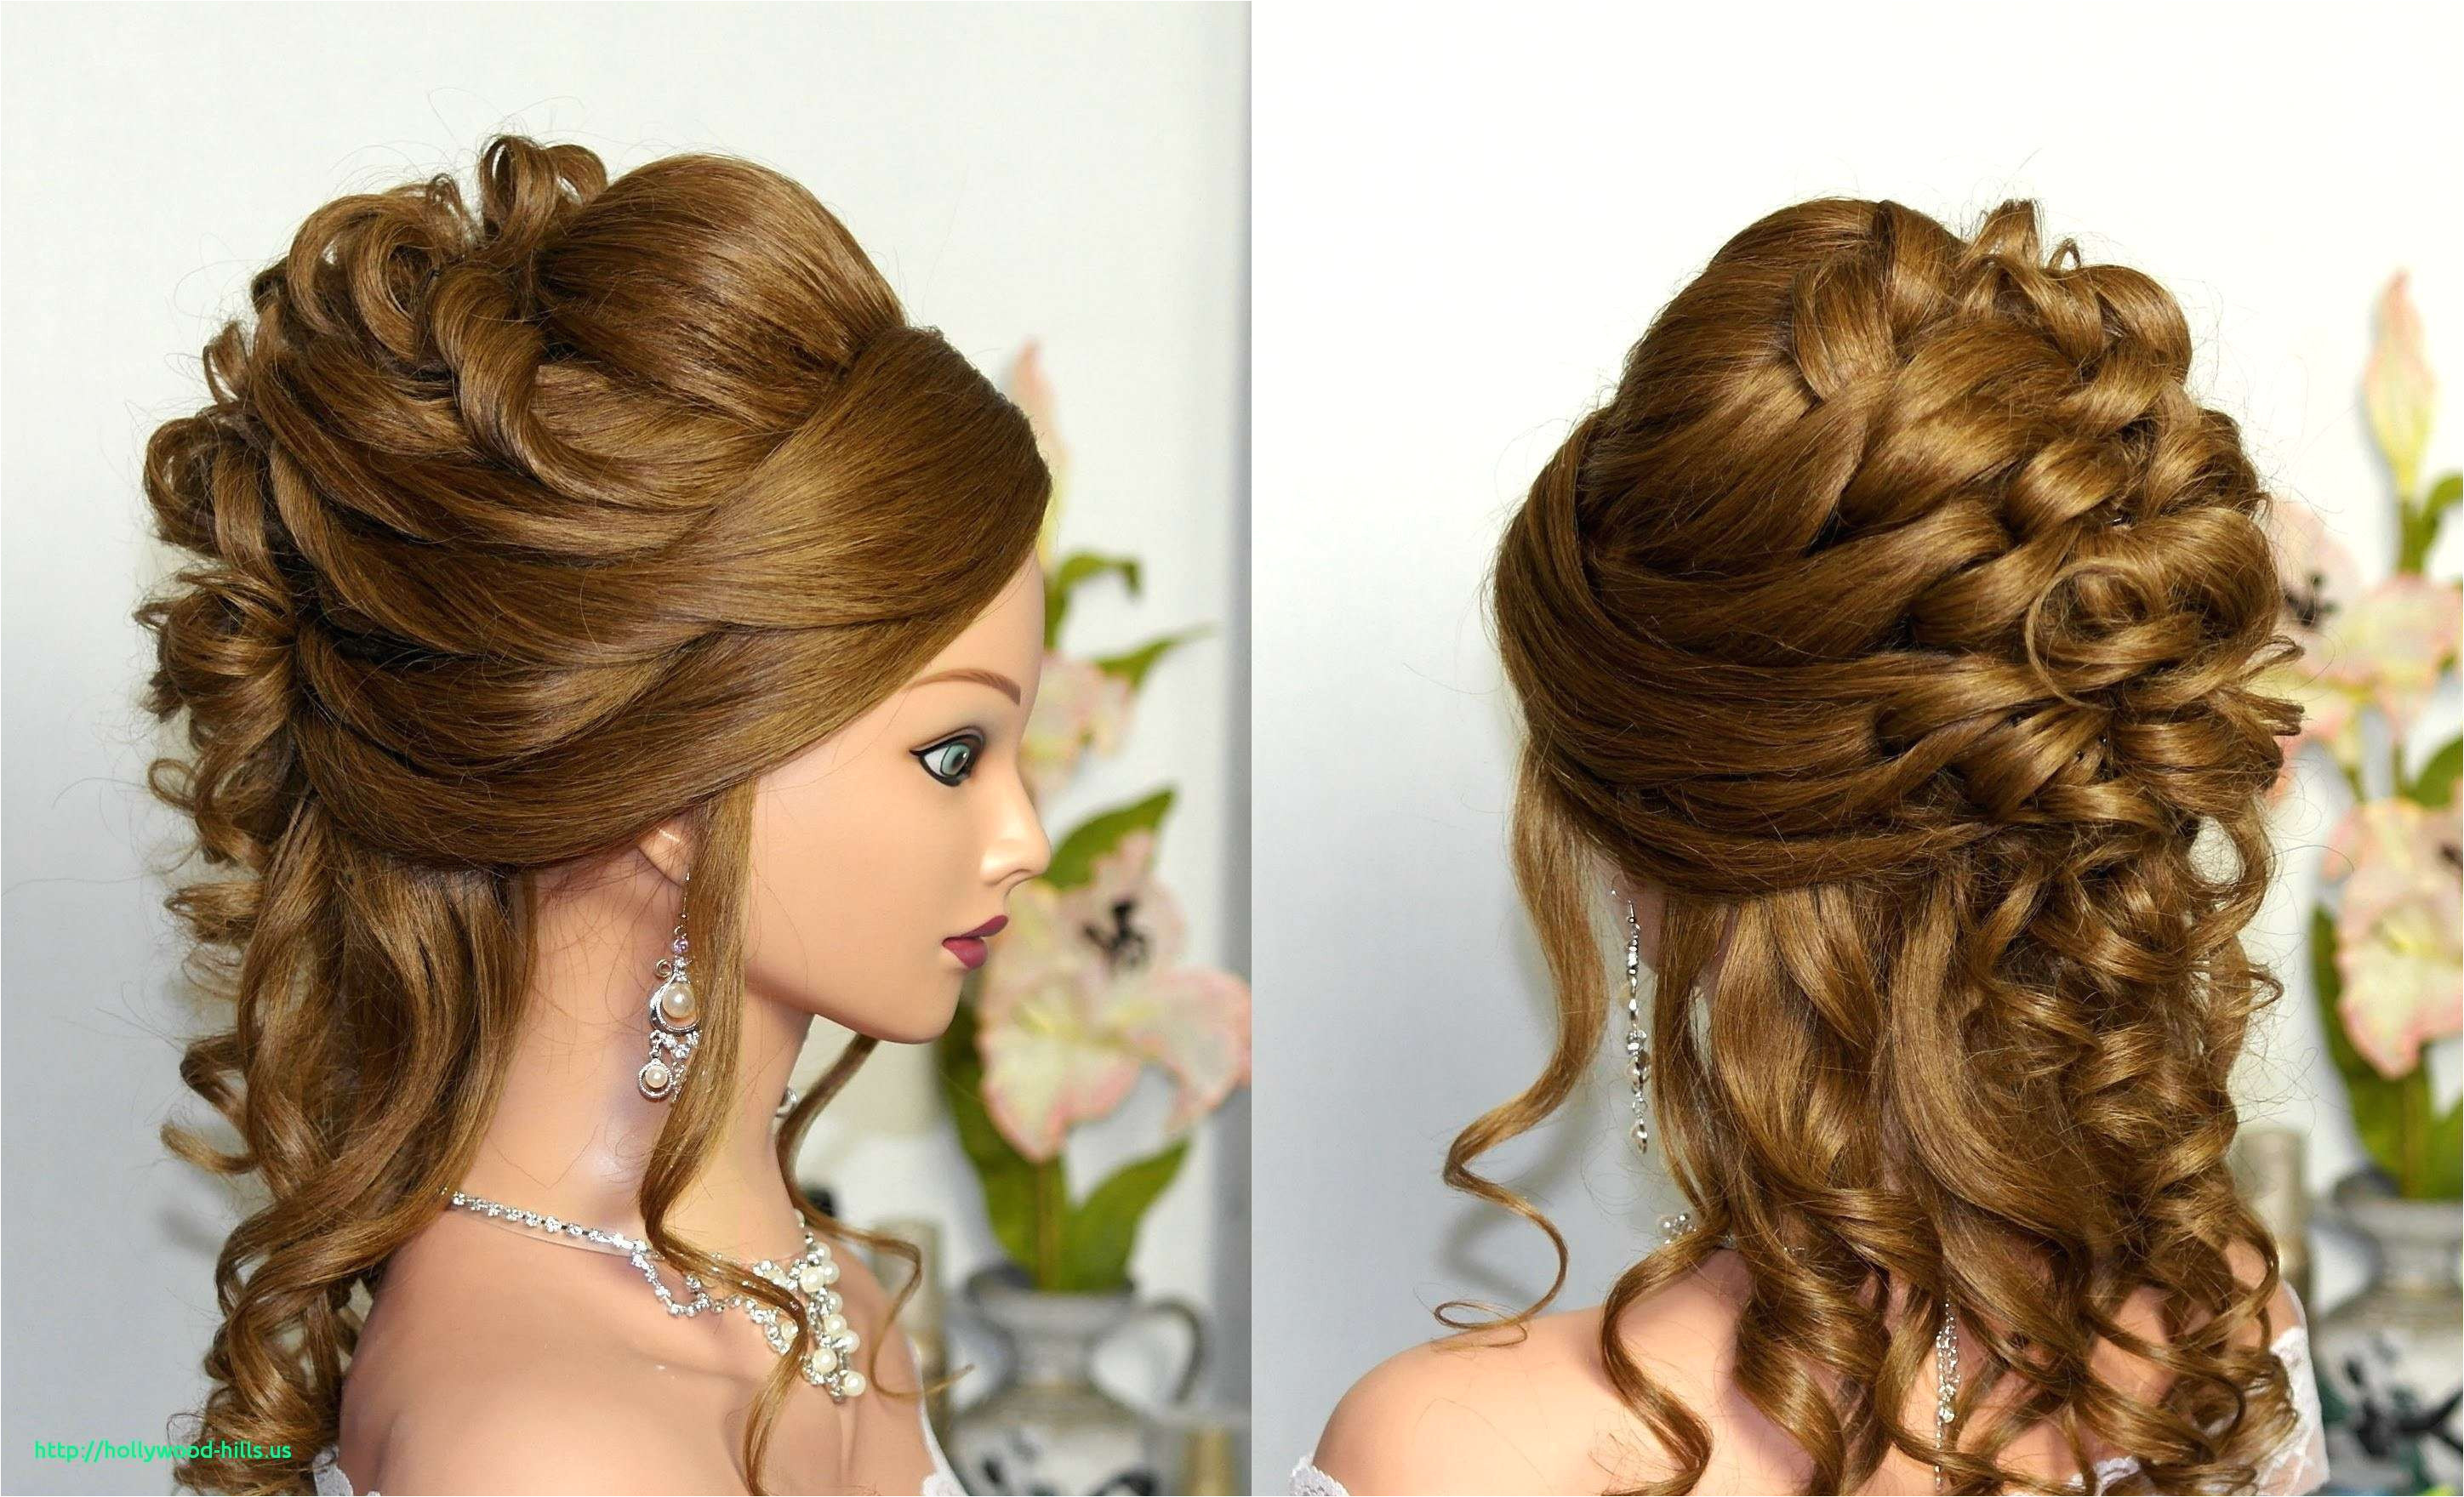 Formal Hairstyles Short Curly Hair Lovely Wedding Hairstyles for Short Curly Hair – Uternity